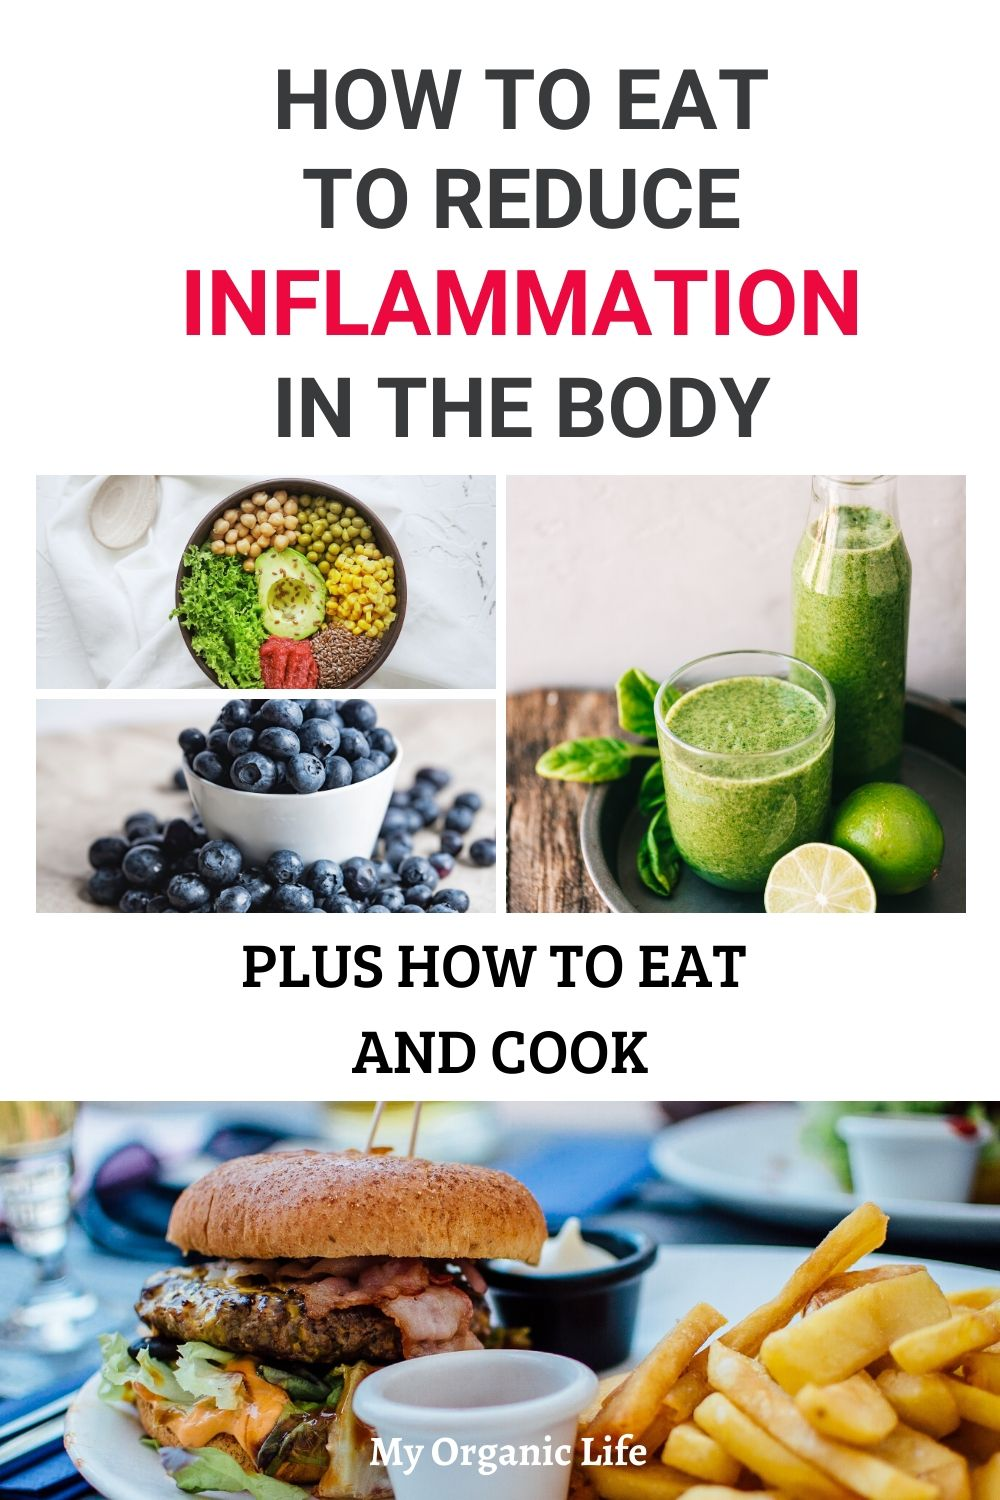 Reduce chronic inflammation by adopting an anti-inflammatory diet – these tips will help you get started! #reduceinflammation #healthybody #healthydiet